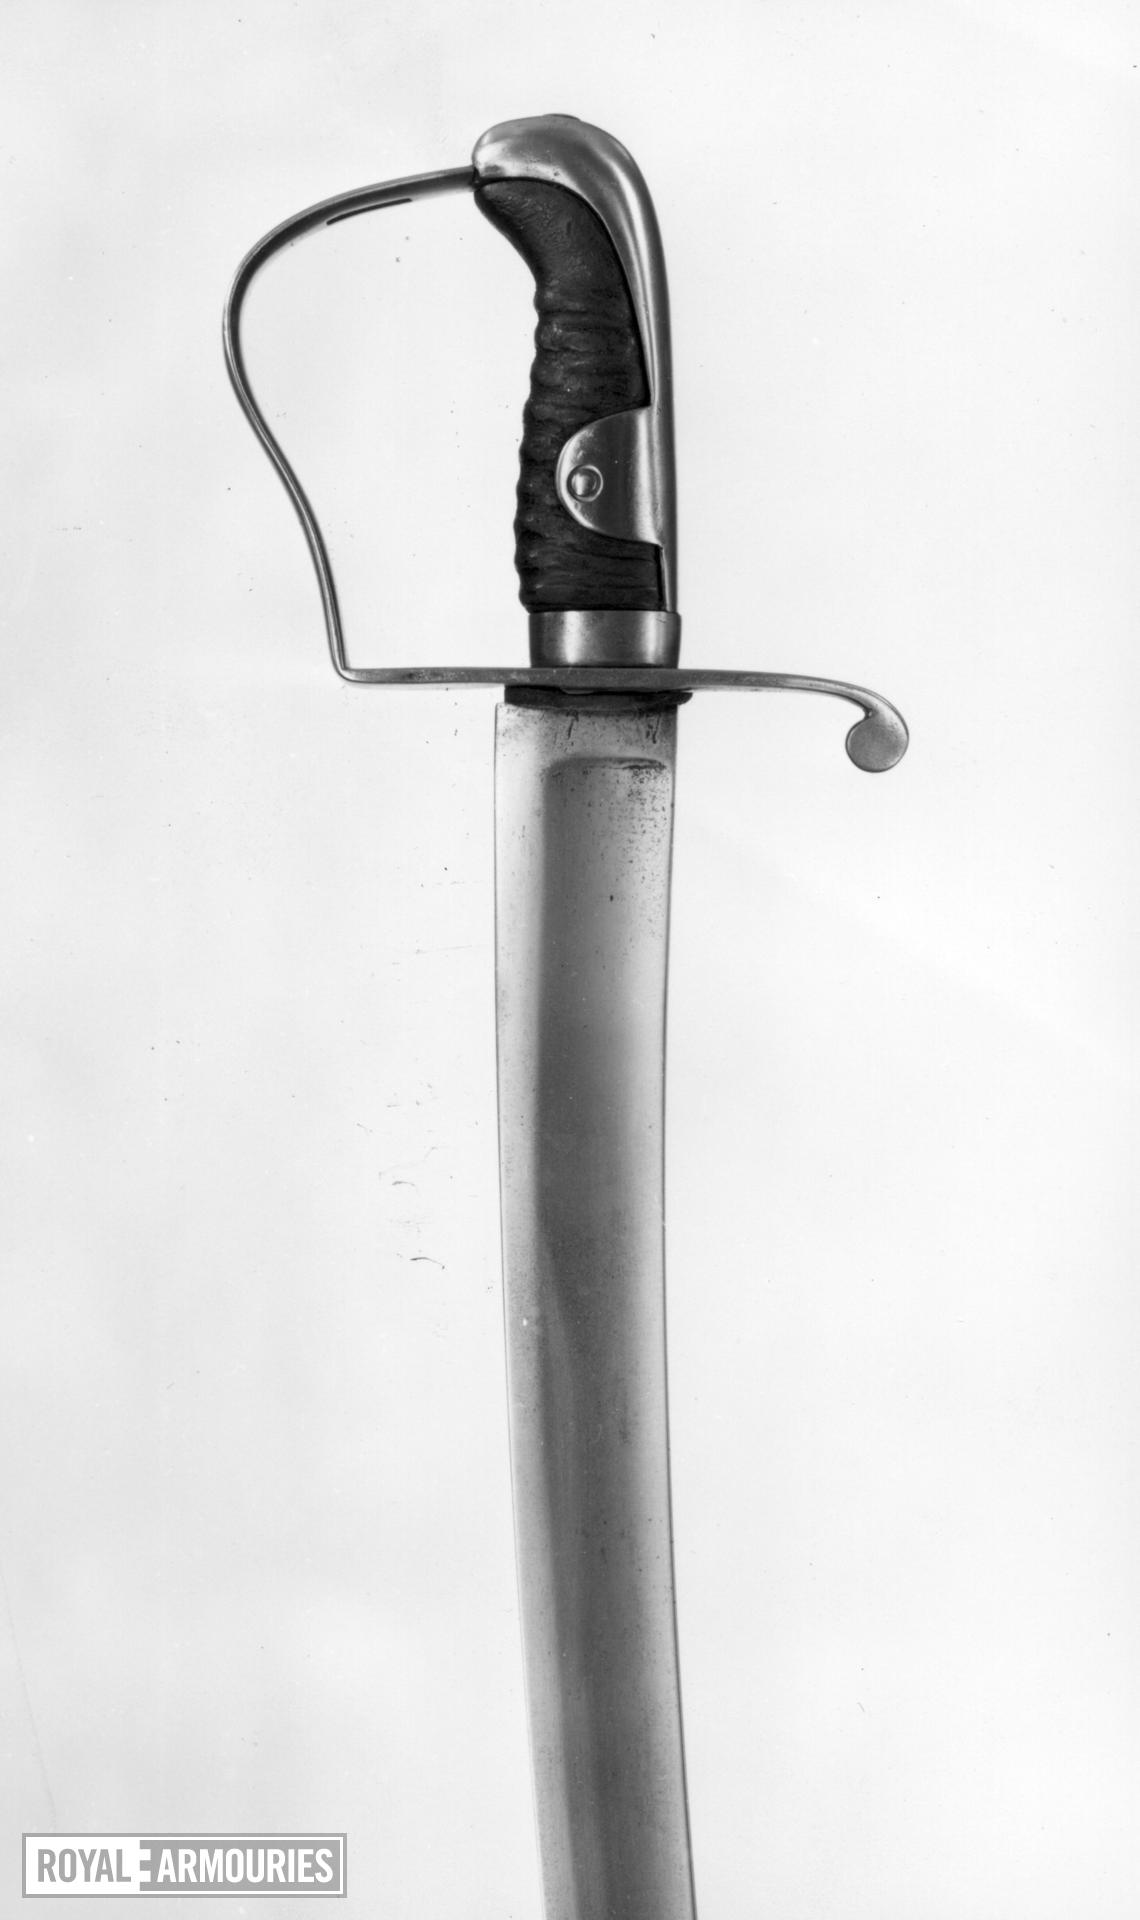 Sword and scabbard - Pattern 1796 Light Cavalry Trooper's sword and scabbard Langets missing. H 2 on blade